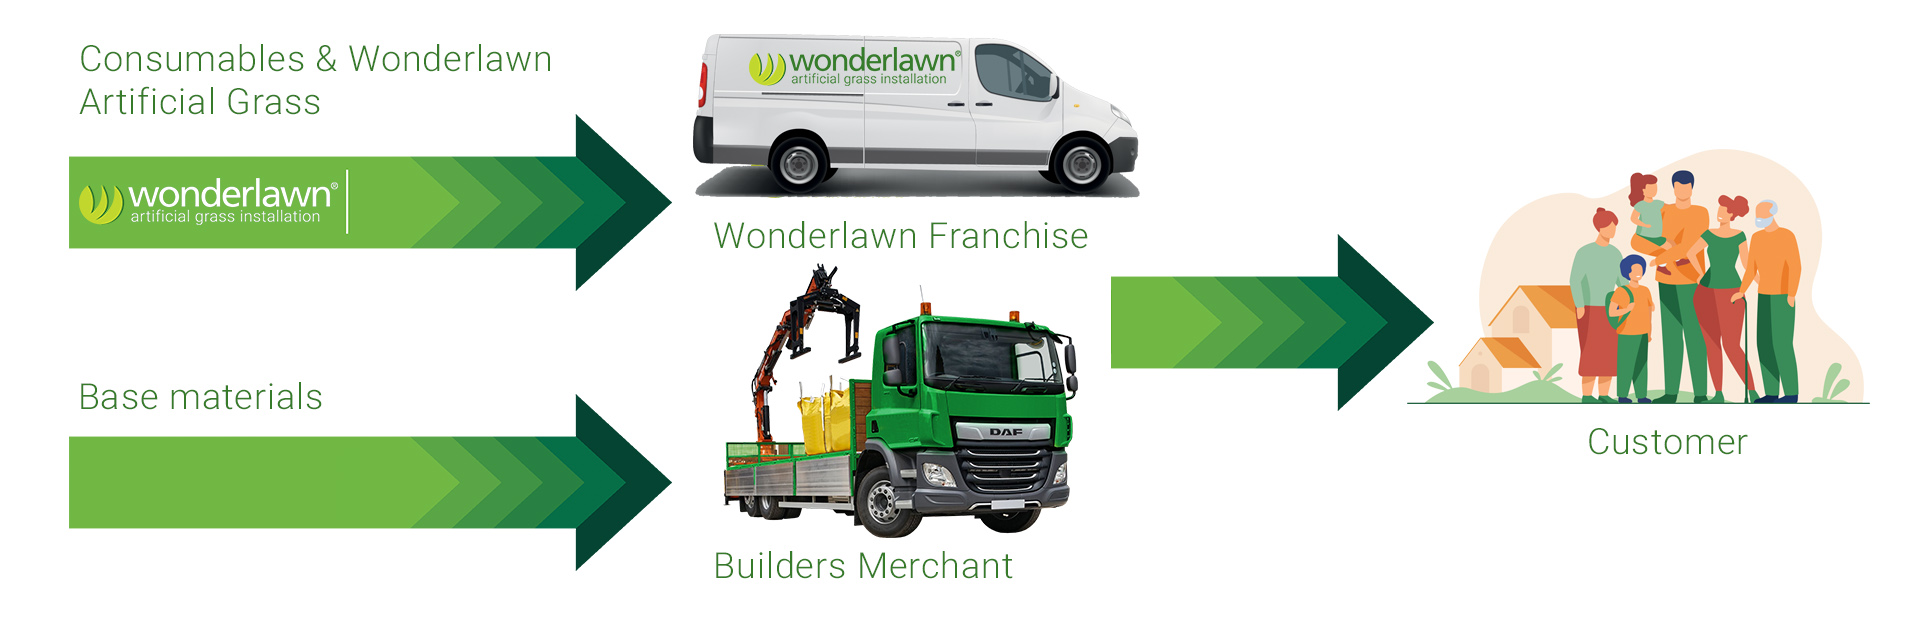 simplifying your franchise business with Wonderlawn